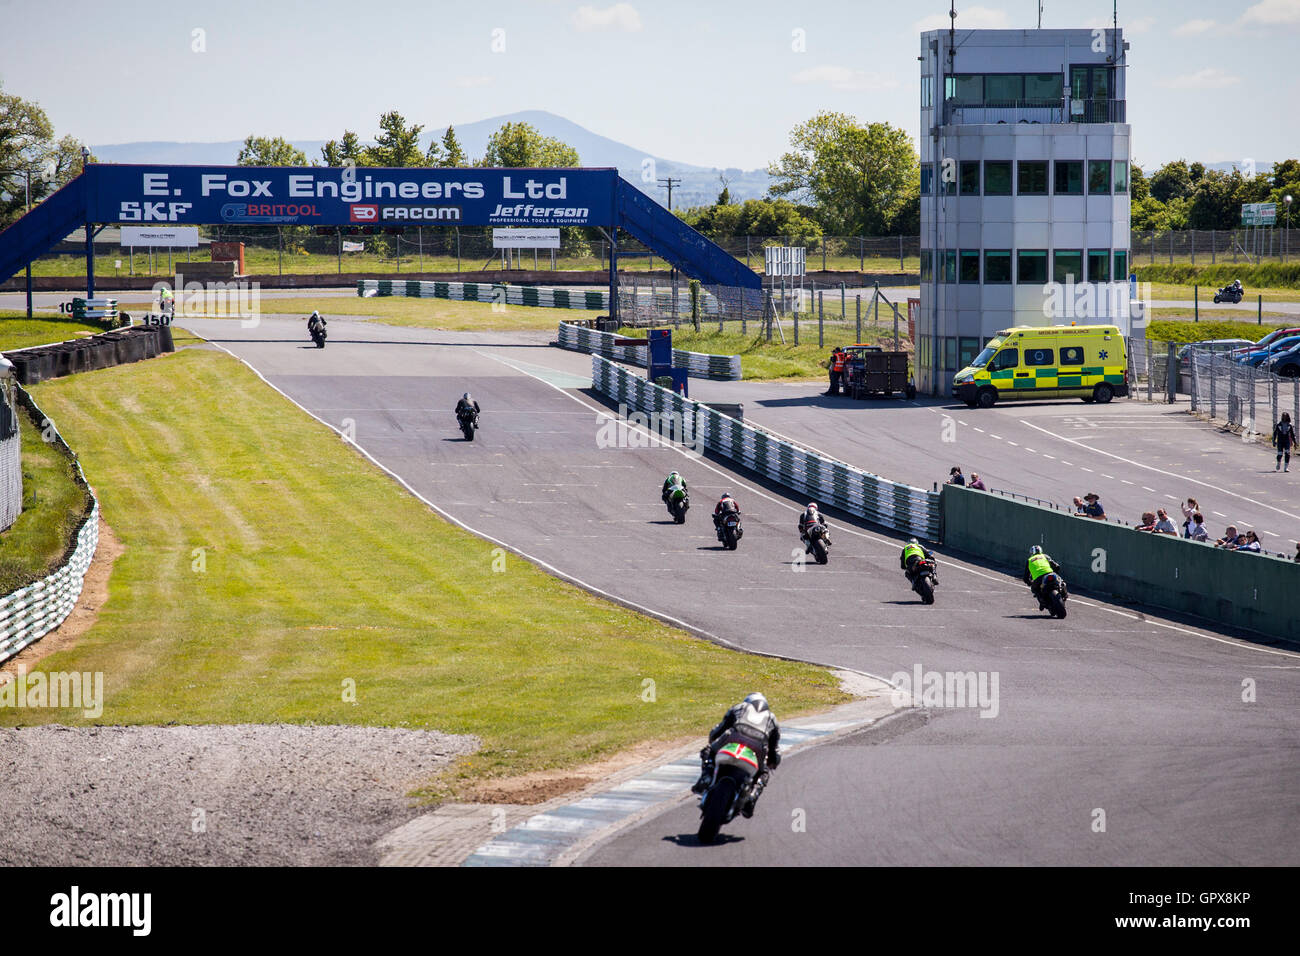 Motorcyclists at a track day riding on the race track at Mondello Park, County Kildare, Ireland - Stock Image